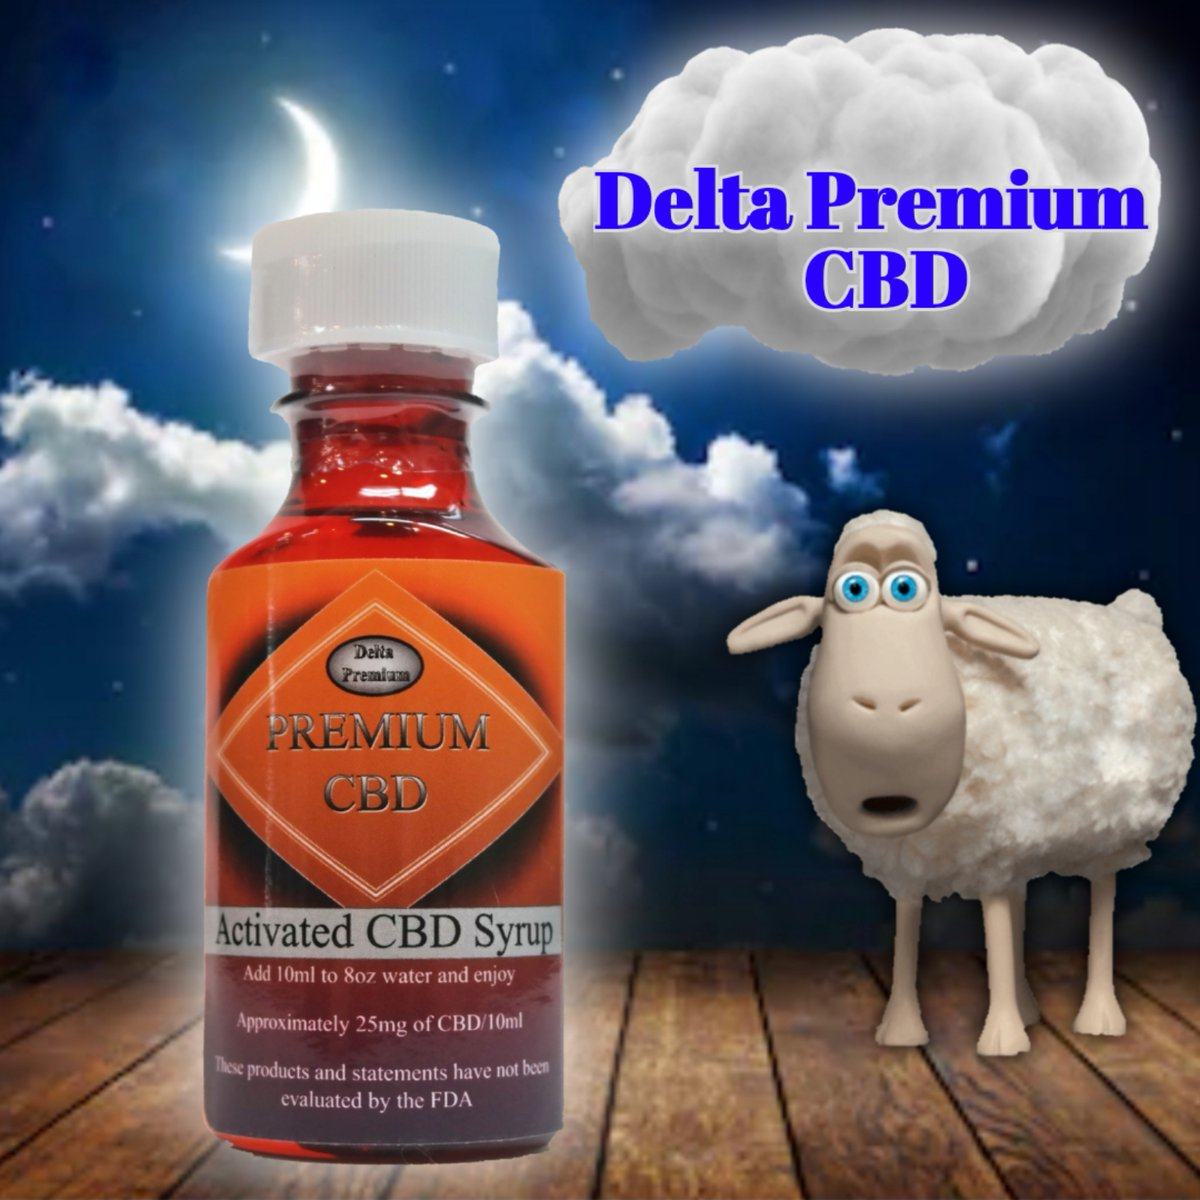 Give counting sheep a break! Delta Premium CBD helps you get to sleep and stay asleep without feeling groggy the next morning.  #CBD #CBDredlands #redlands #inlandempire #cbdoil #cbdproducts #1cbdintheie #deltapremiumCBD #cbdedibles #PTSD #Anxiety #PainRelief #SleepAidpic.twitter.com/L056Lp5Bld